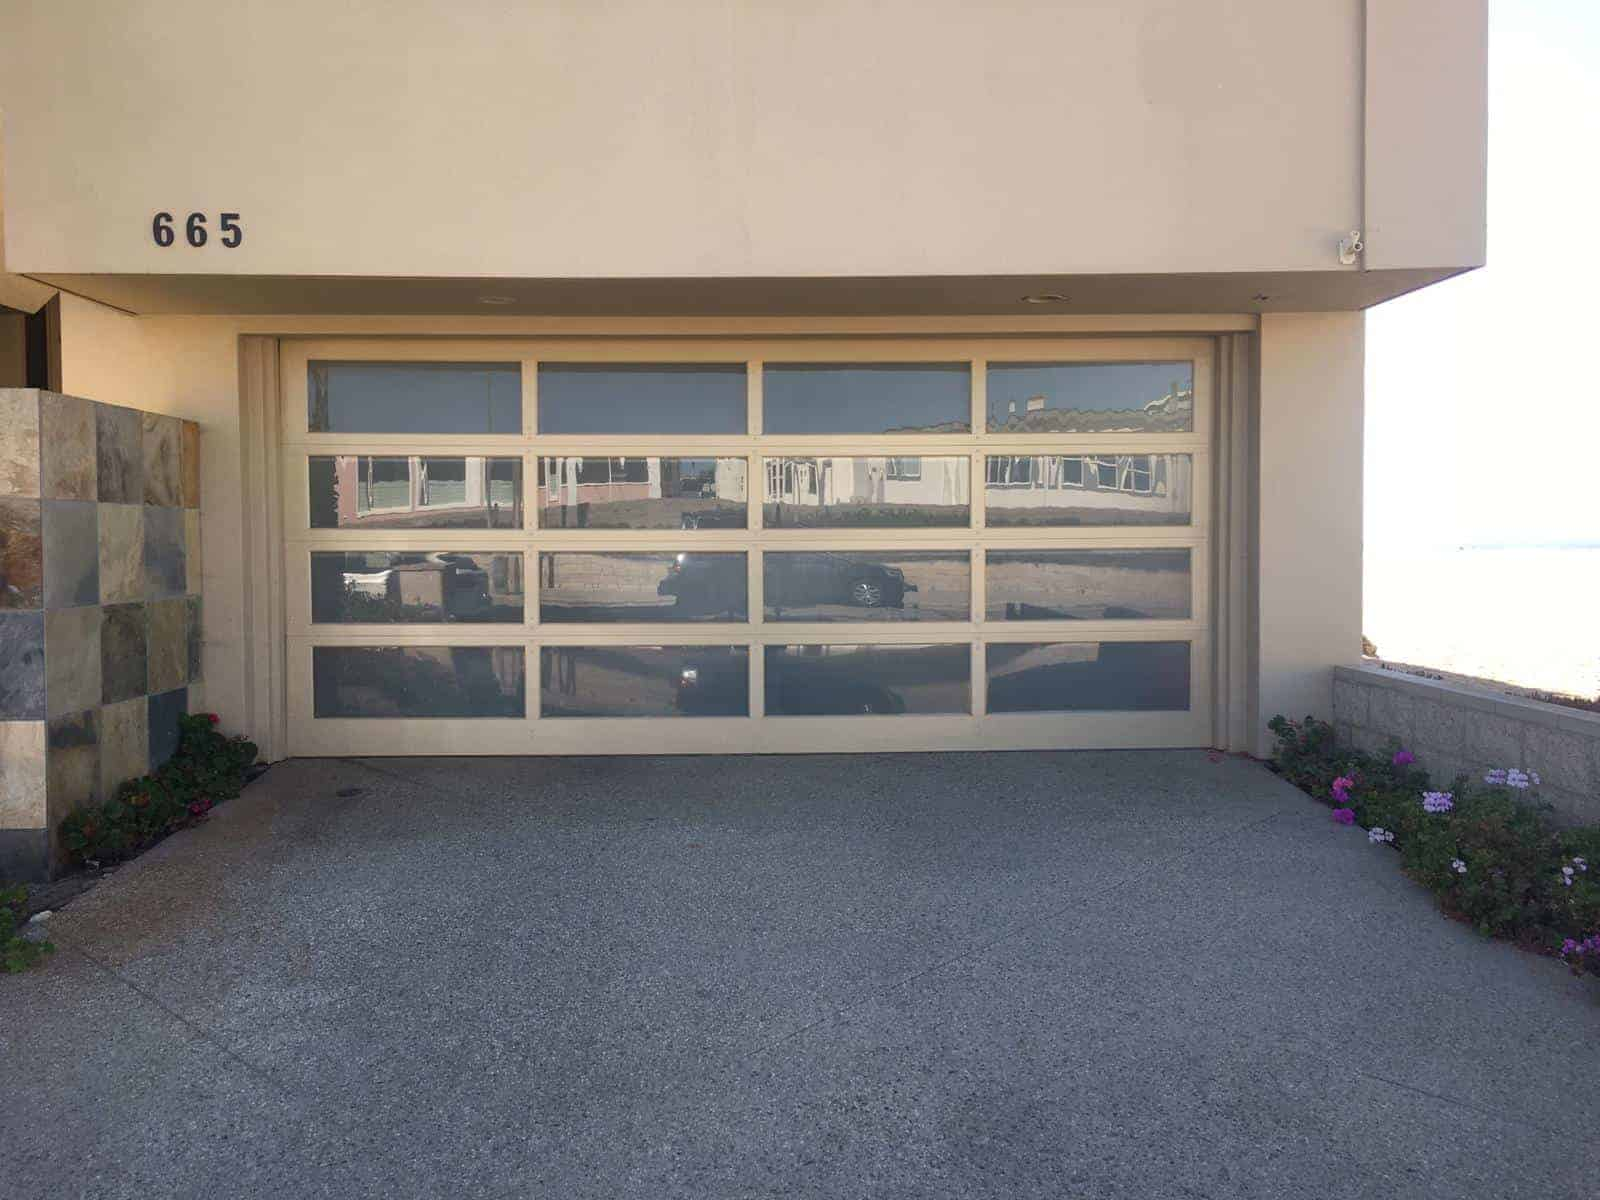 Palos Verdes Estates CA Garage Door Repair & Replacement